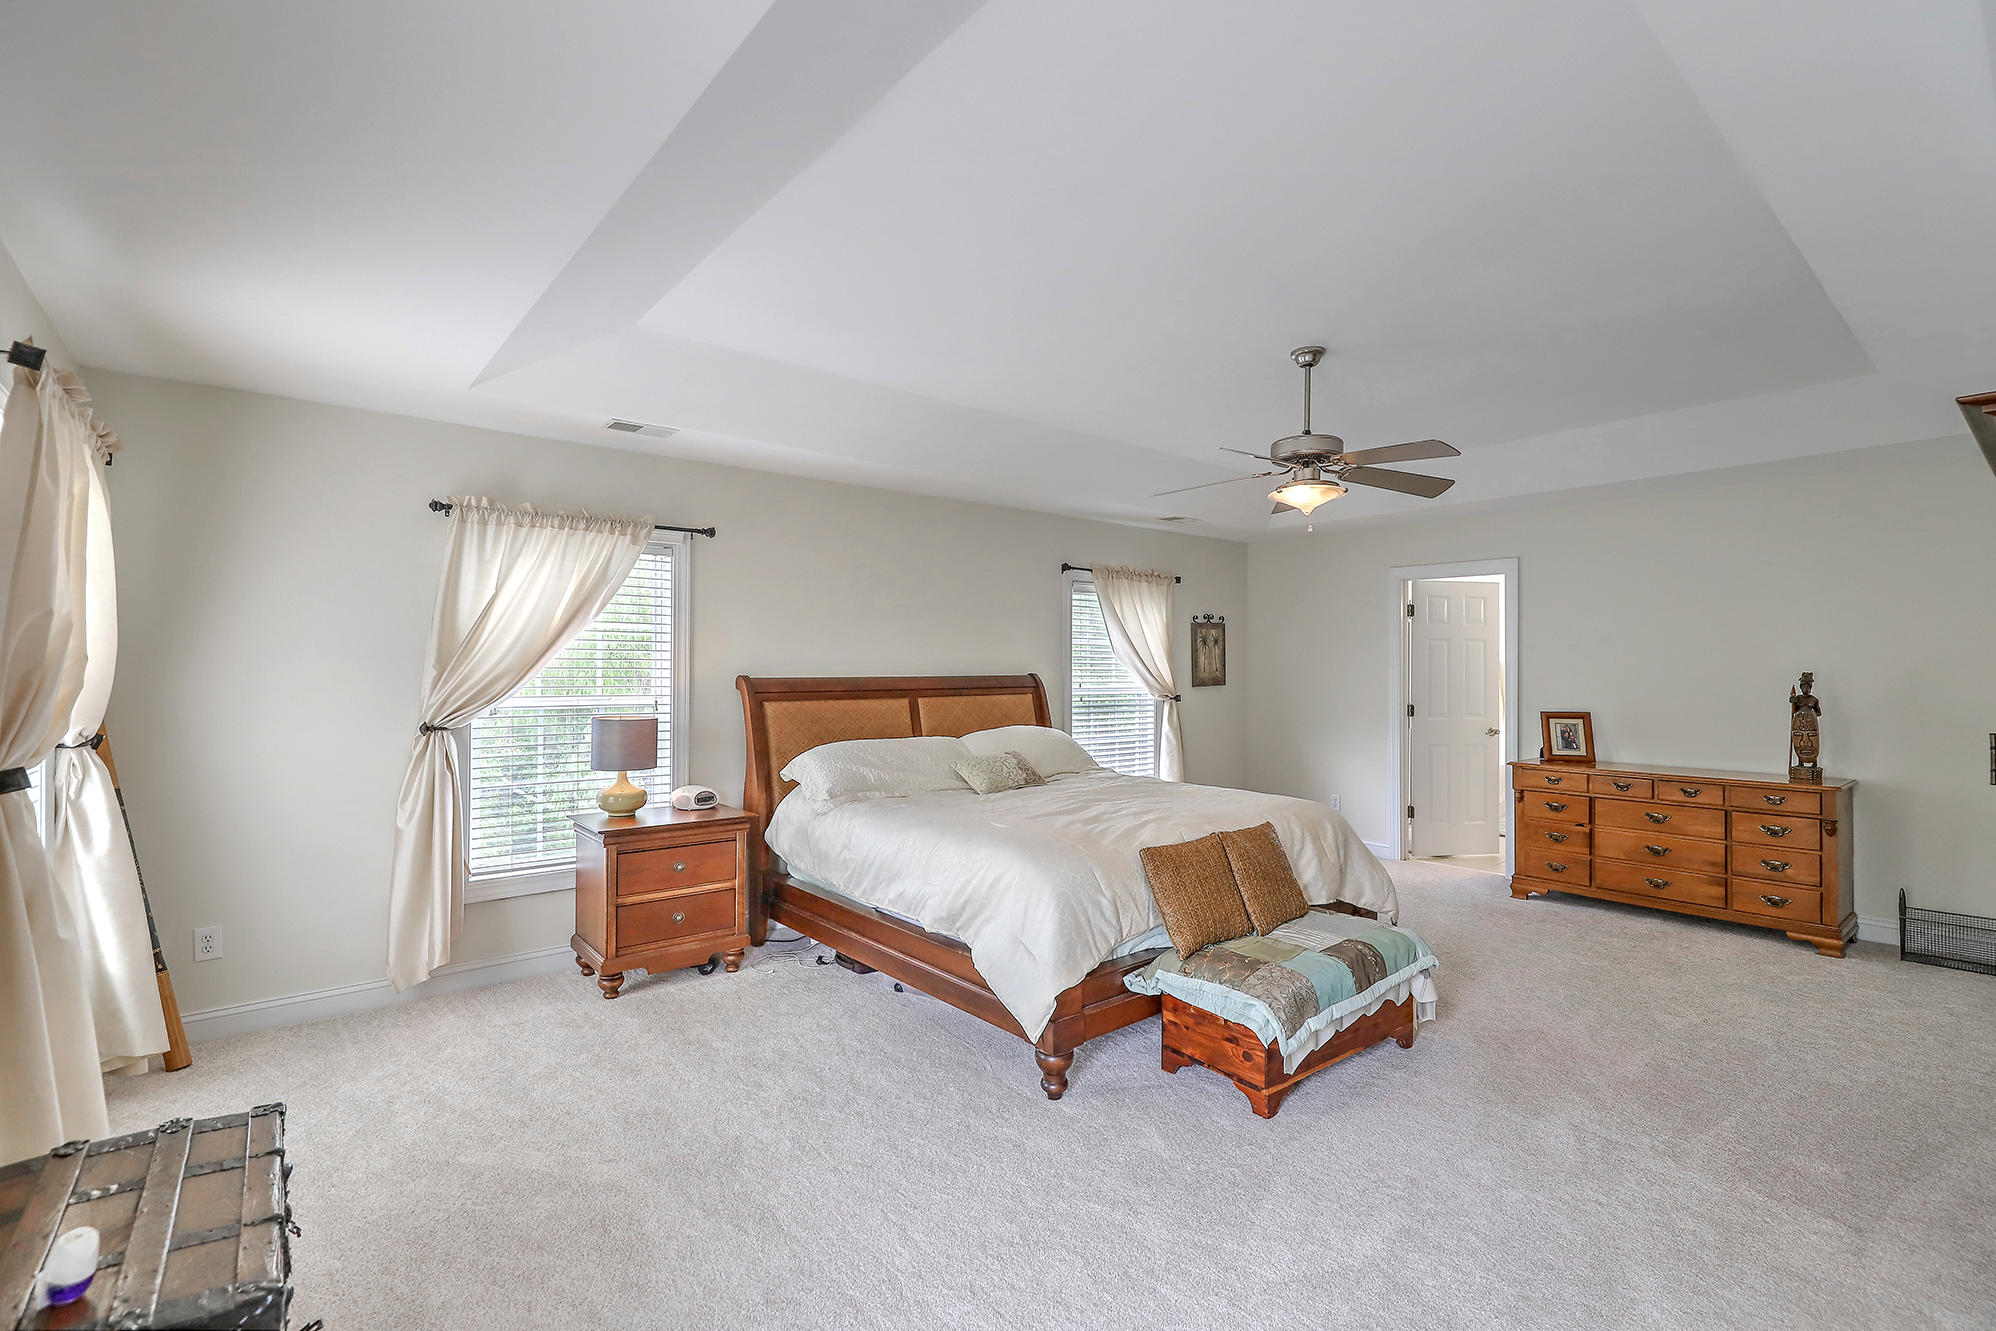 Rivertowne On The Wando Homes For Sale - 2182 Sandy Point Lane, Mount Pleasant, SC - 16